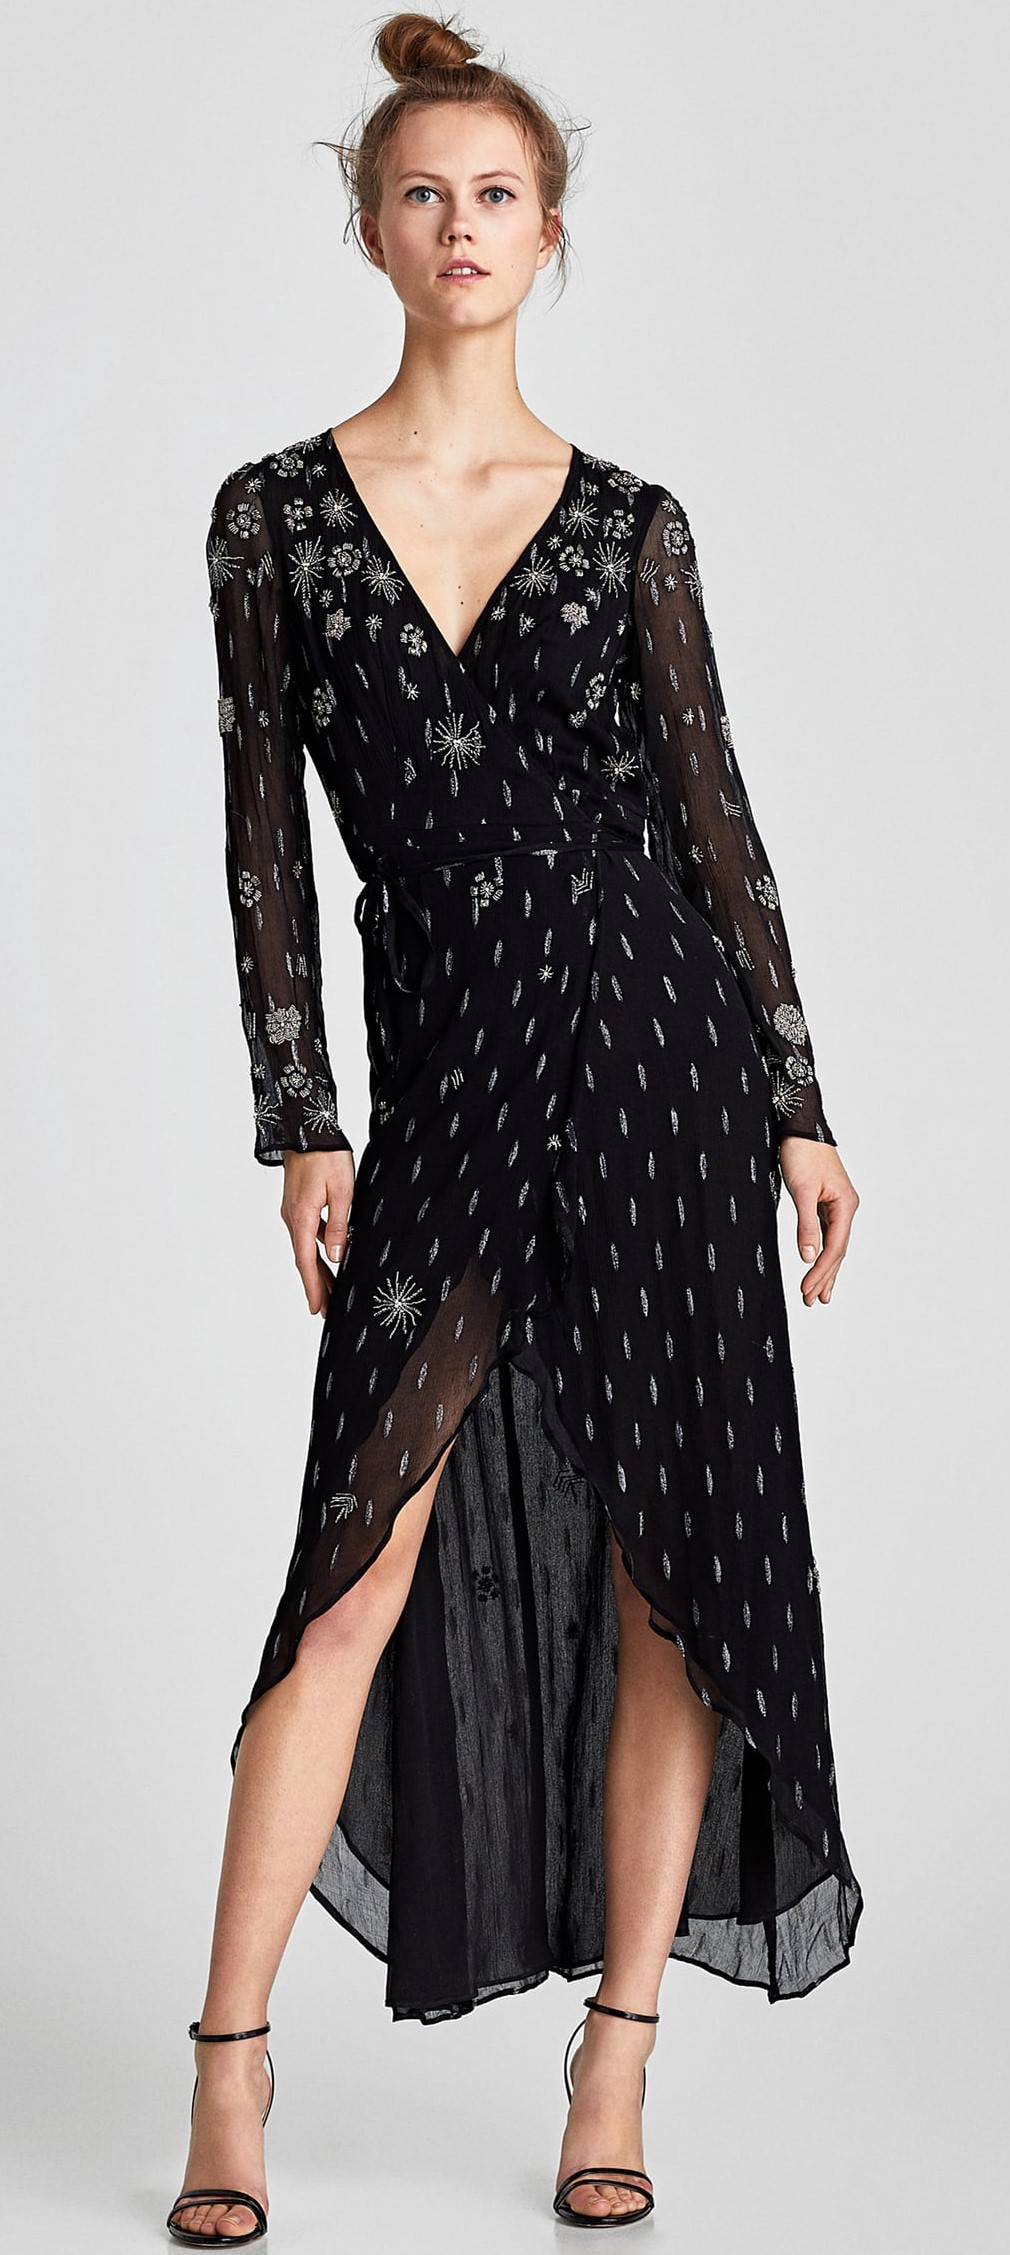 44986b5e7ffe Black Limited Edition Embroidered Jacquard Dress, $129 and Midnight Blue  Crossover Dress with Belt, $119: A dramatic but easy to wear long dress  with a ...